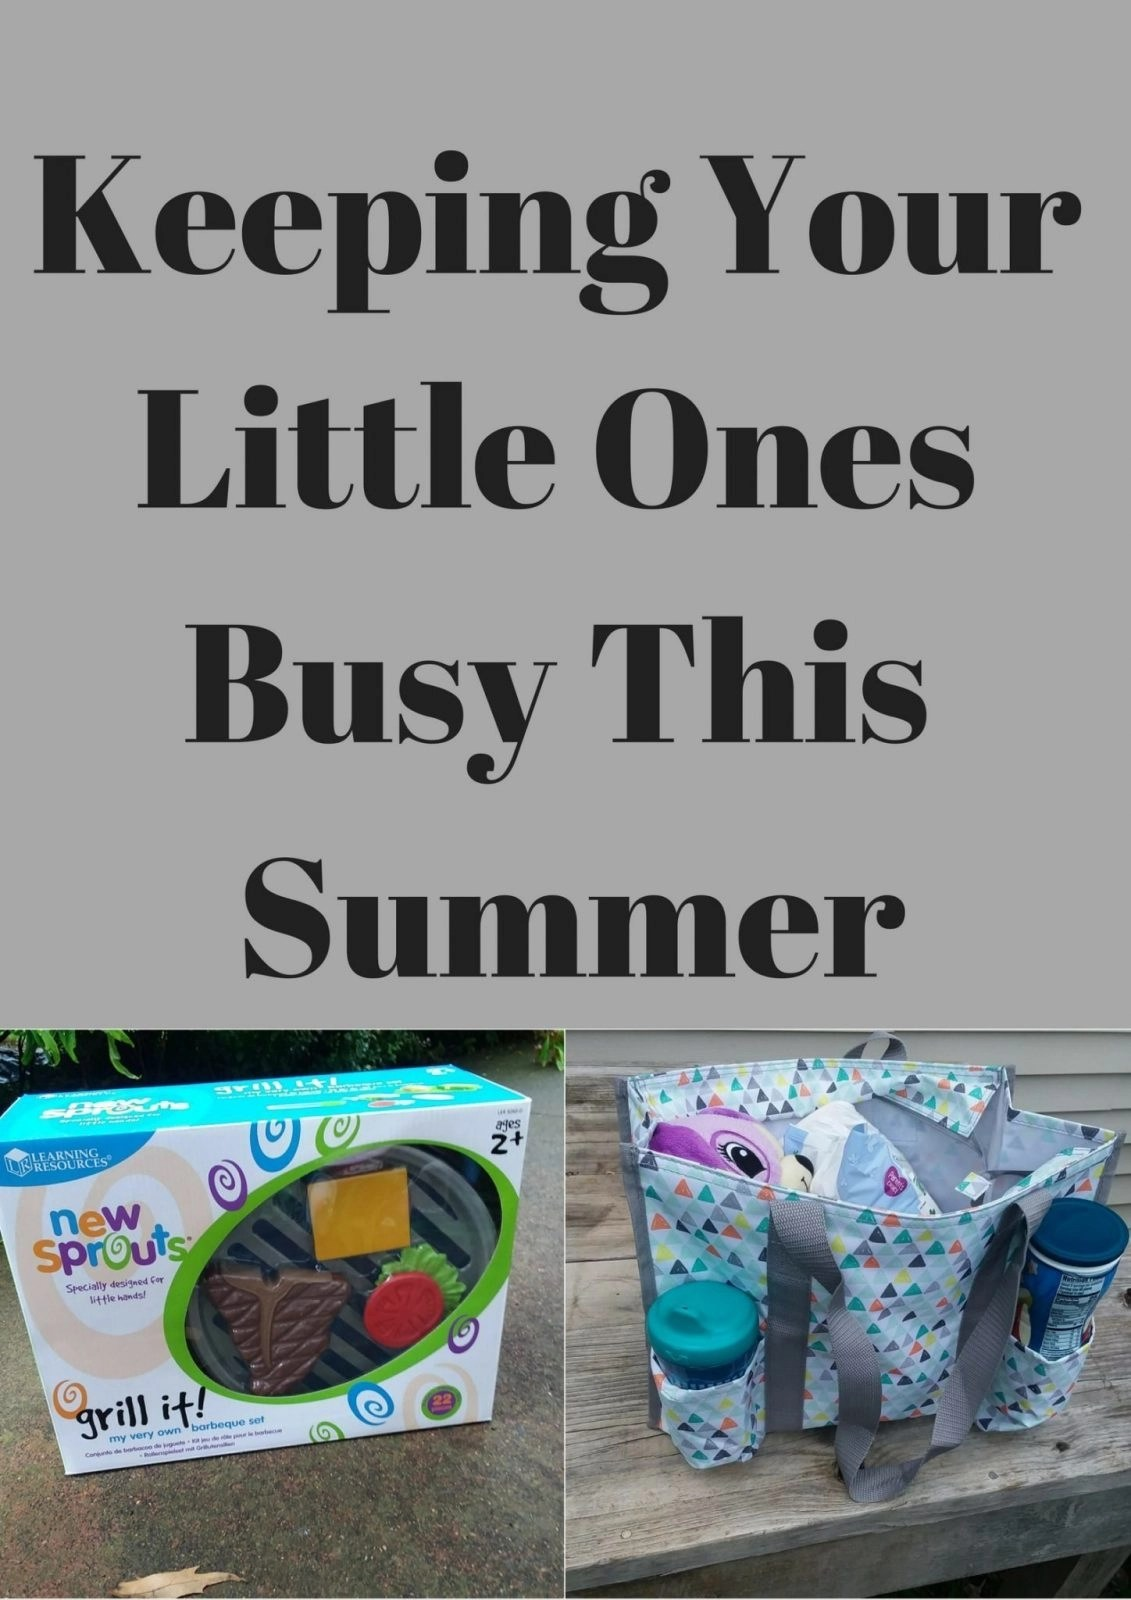 Keeping Your Little Ones Busy This Summer